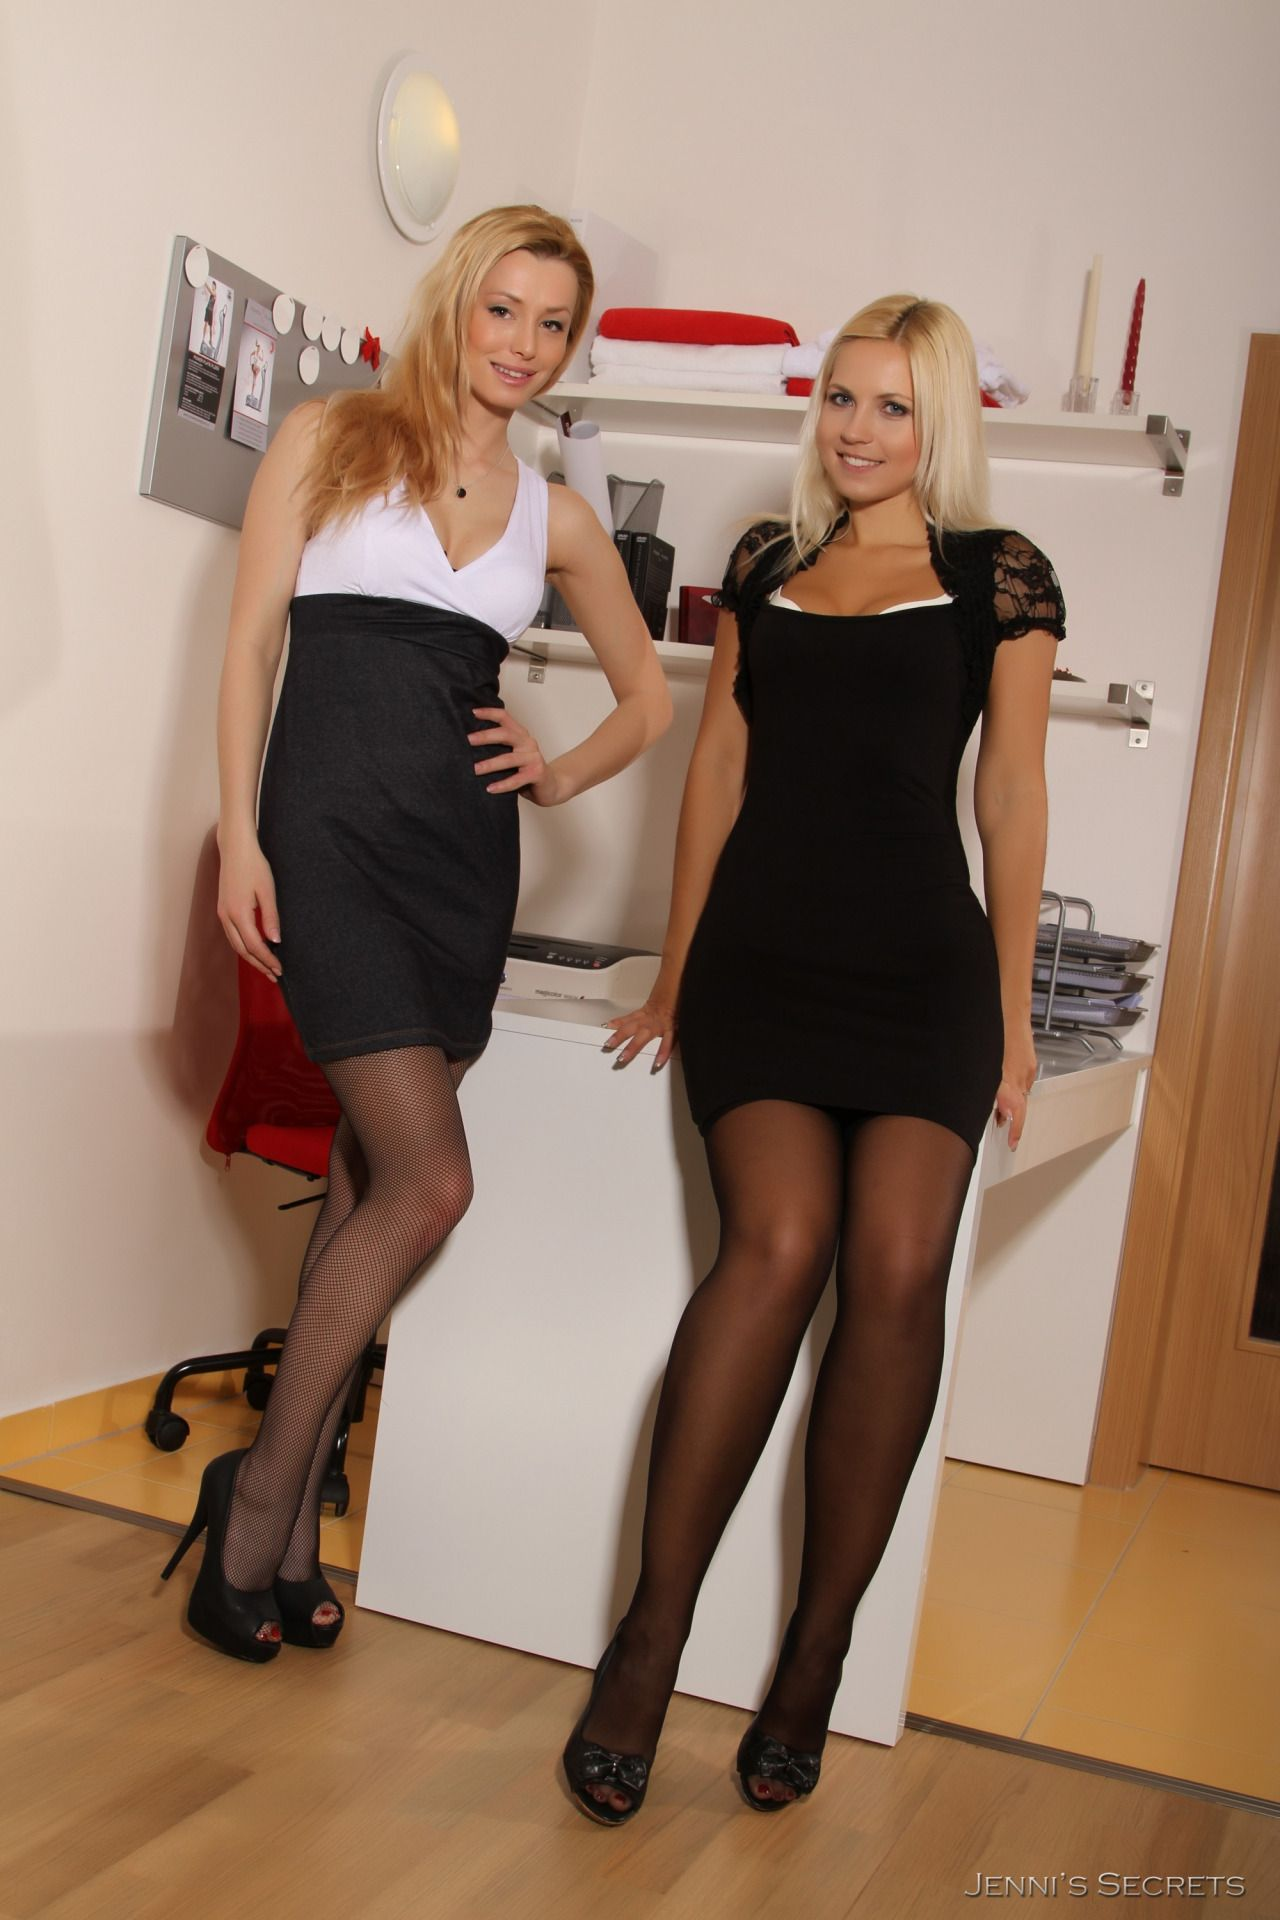 Office girls photo beautiful pinterest girl photos black tights and stockings - Office girls in stockings ...